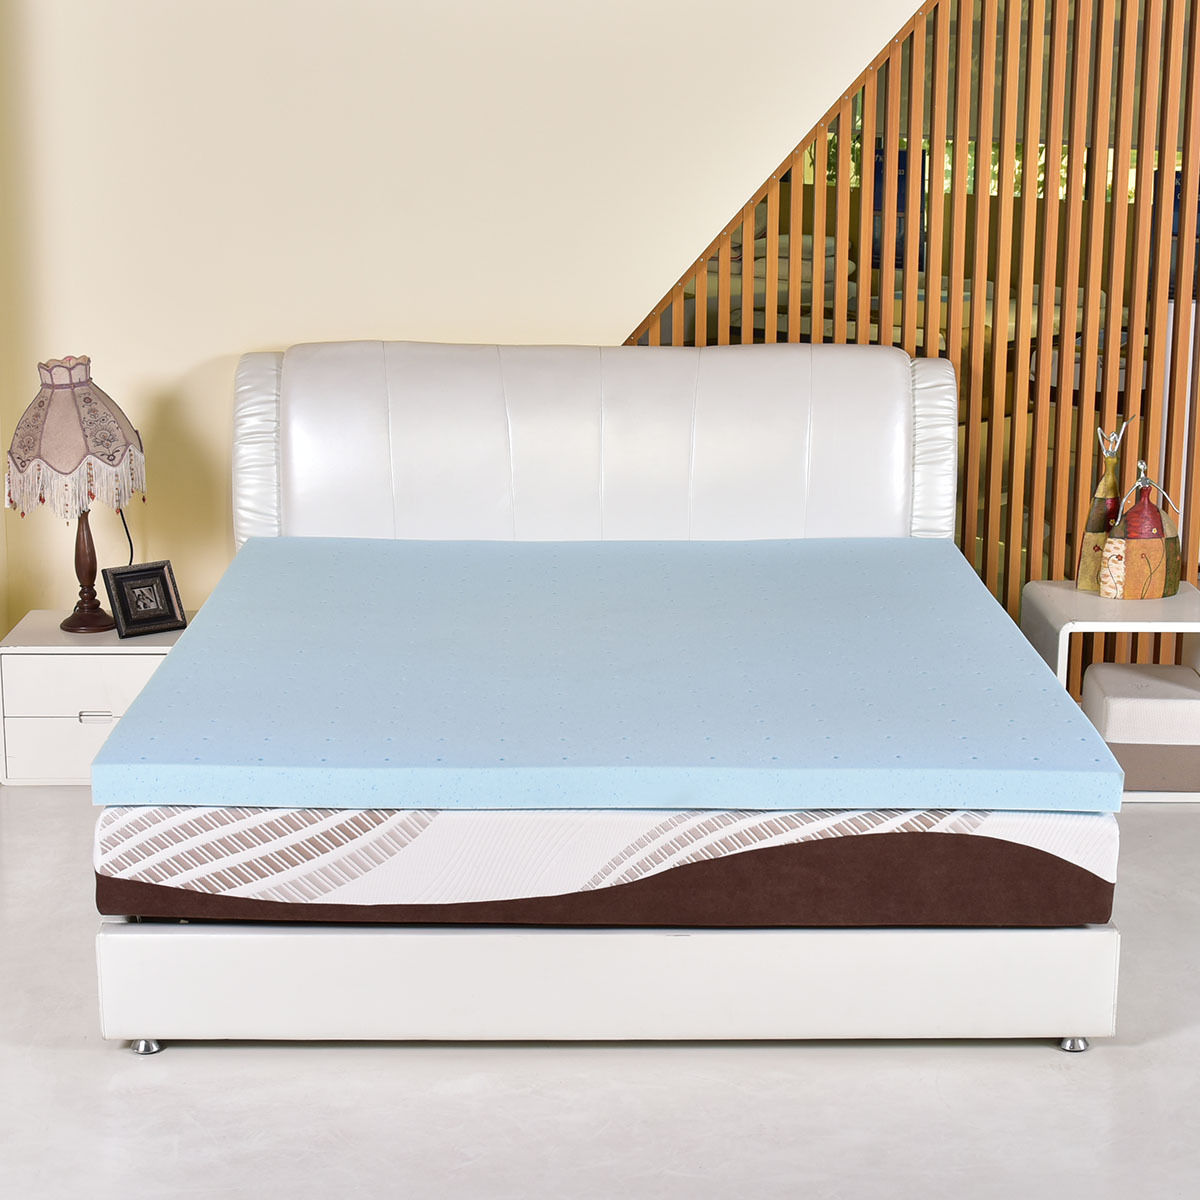 Costway King Size 3'' Gel Memory Foam Mattress Mat Bed Pad Topper Furniture